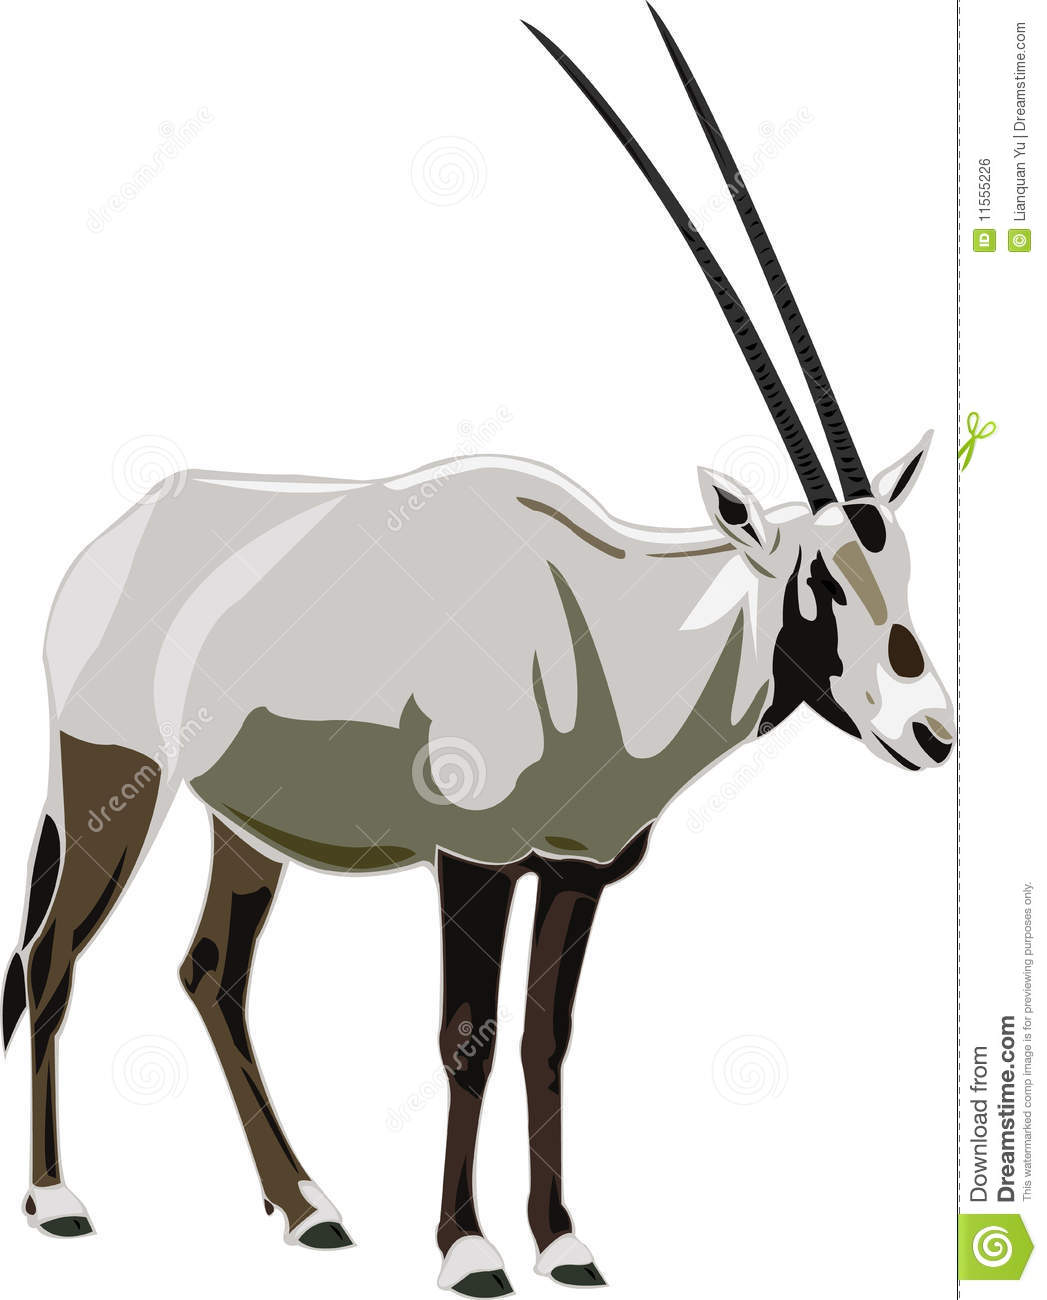 Oryx clipart #14, Download drawings